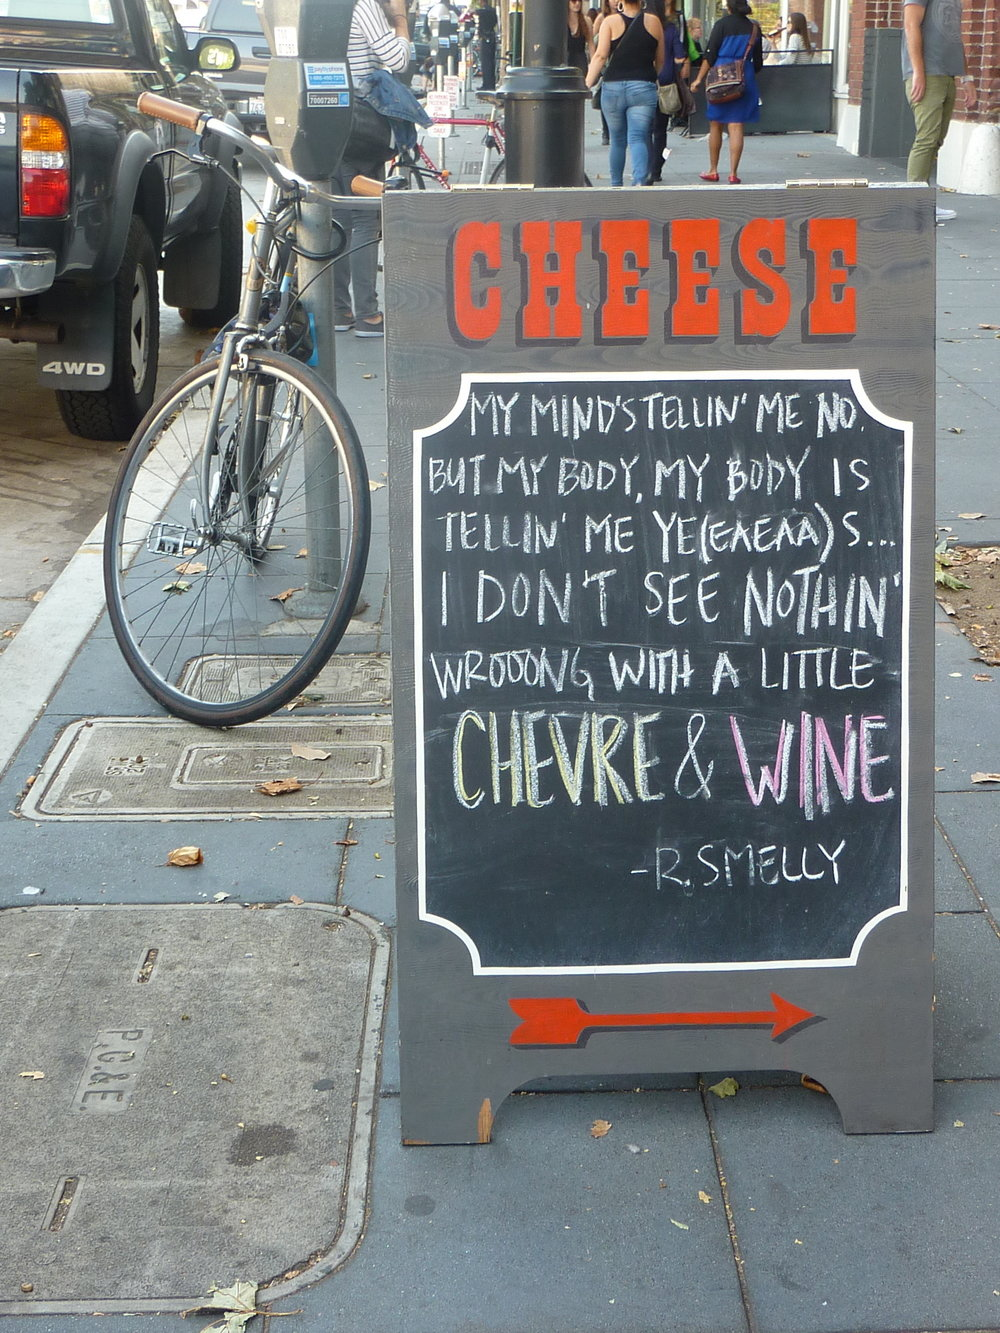 ORIG-mission-cheese-sandwich-board_9669449194_o.jpg